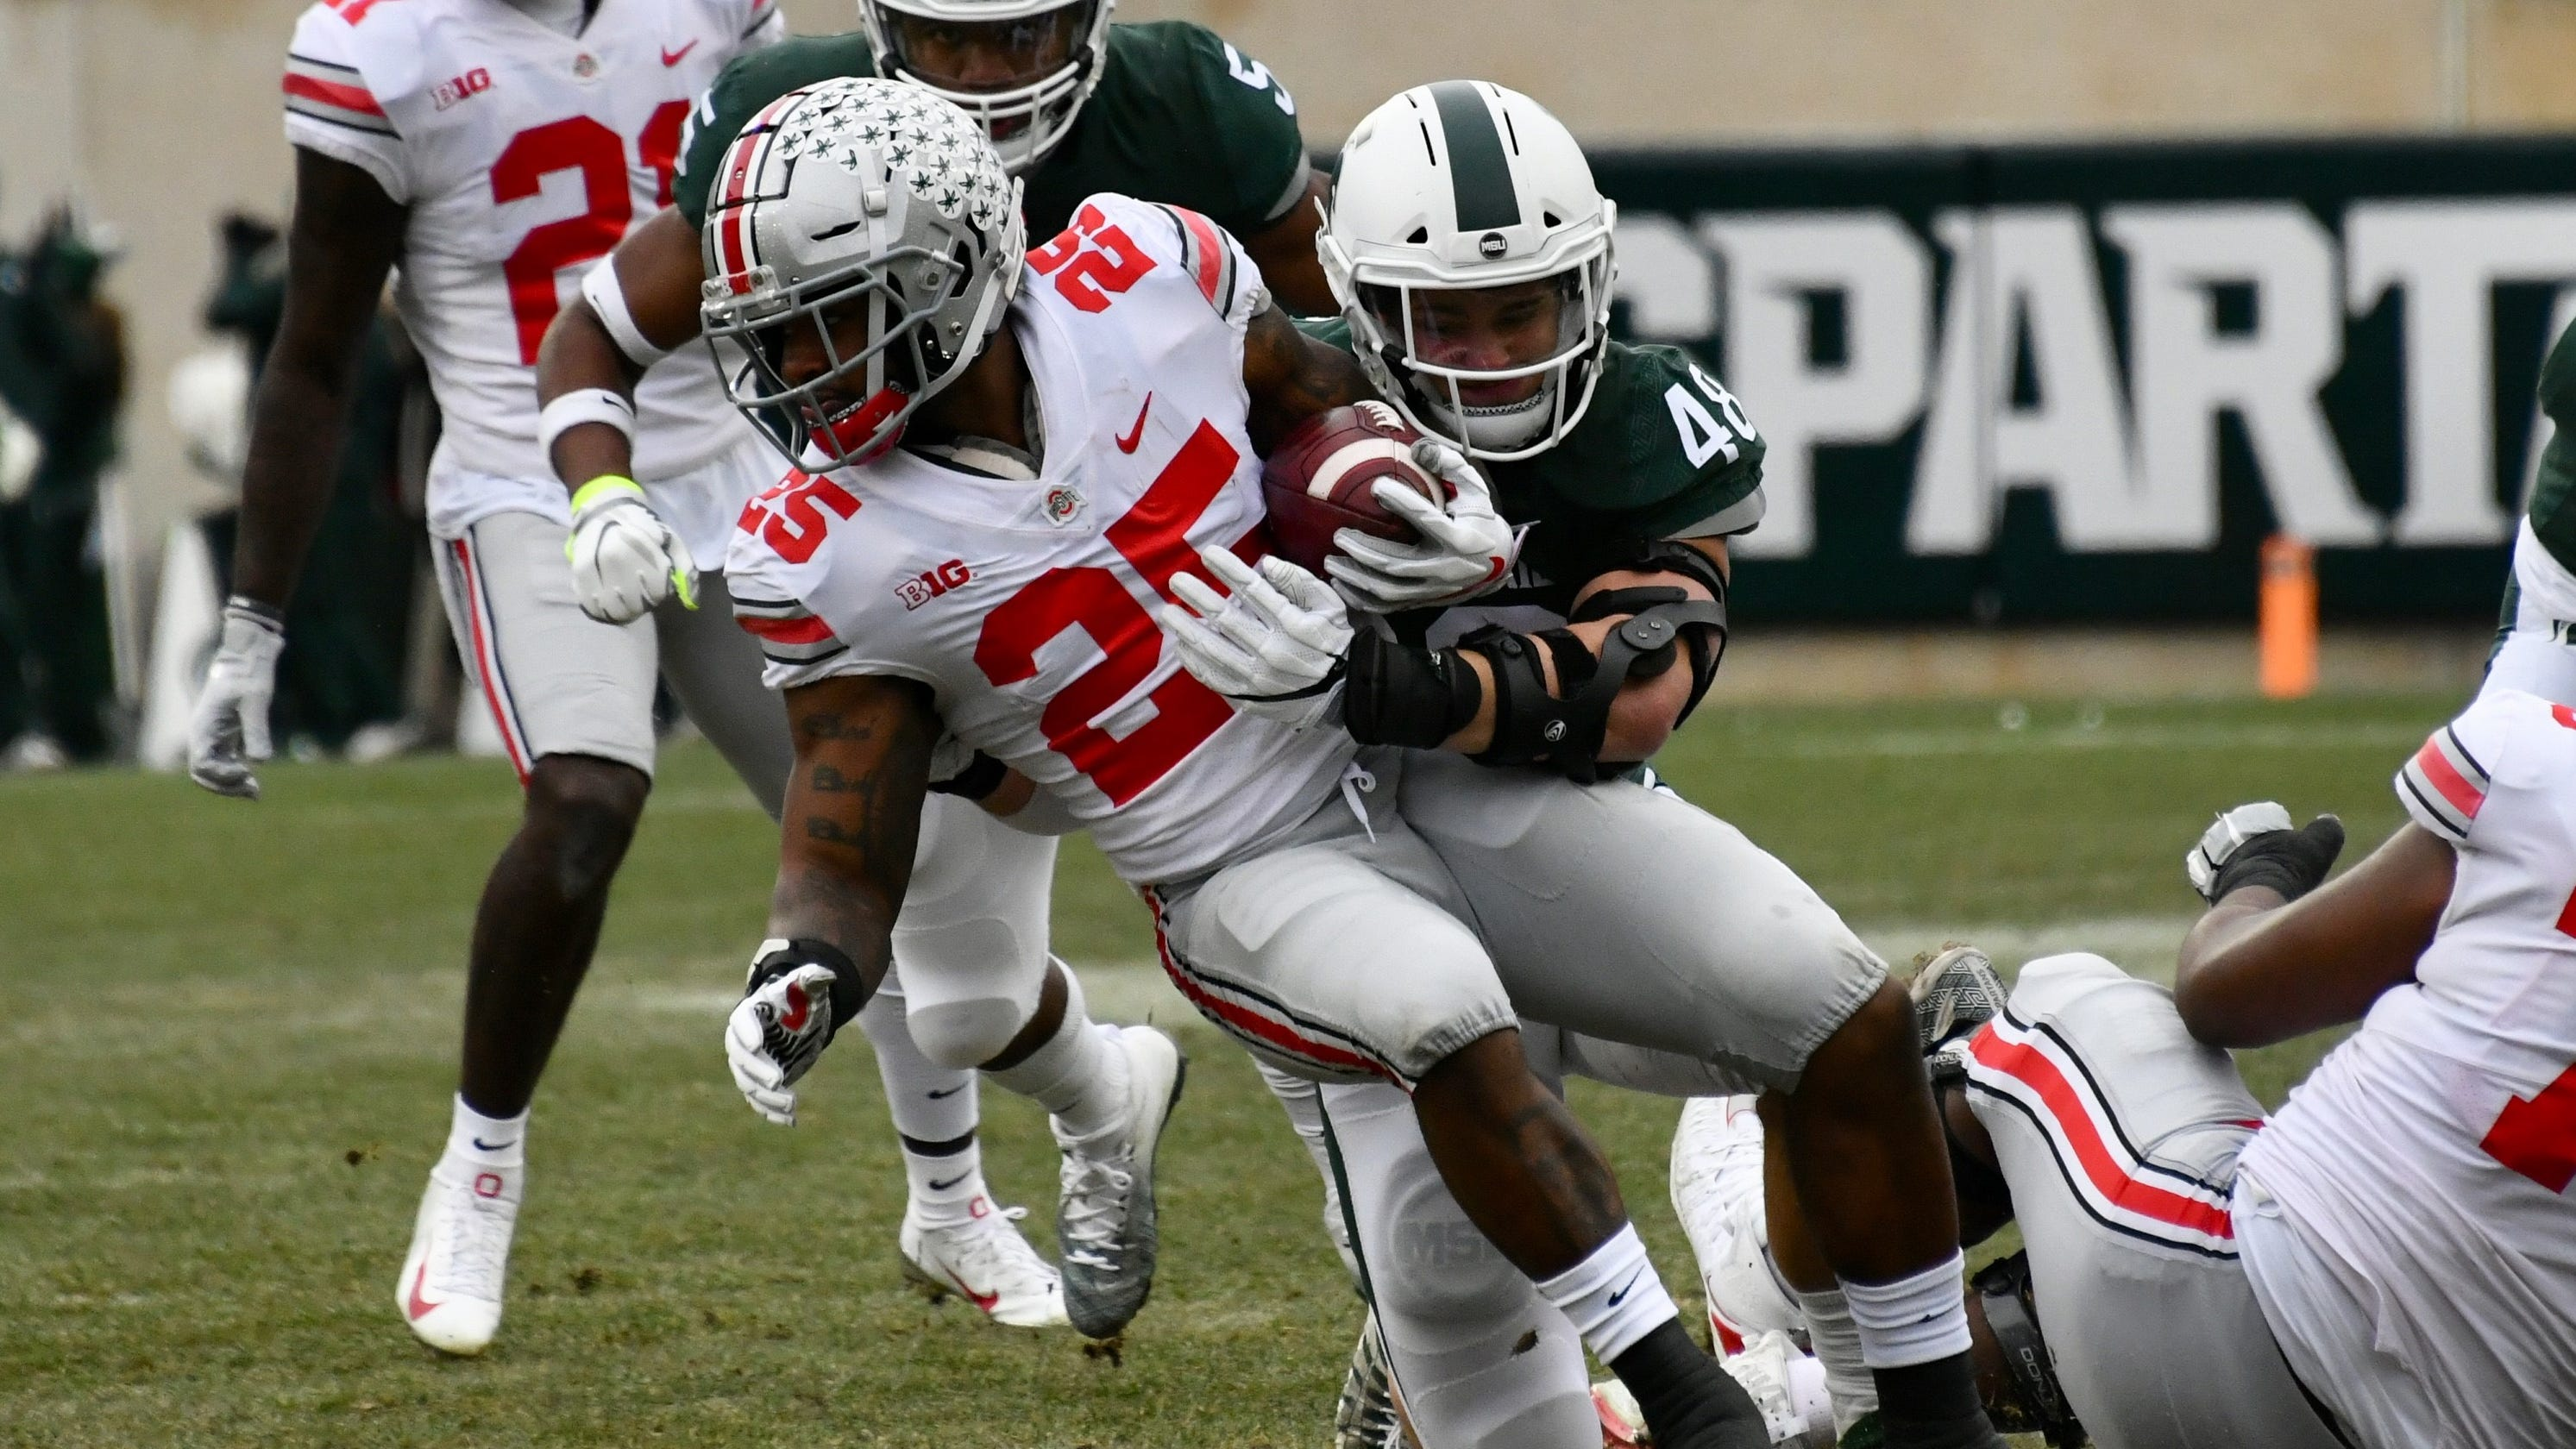 cc84e0908df 'Pretty embarrassing': Michigan State offense sputters in loss to Ohio State